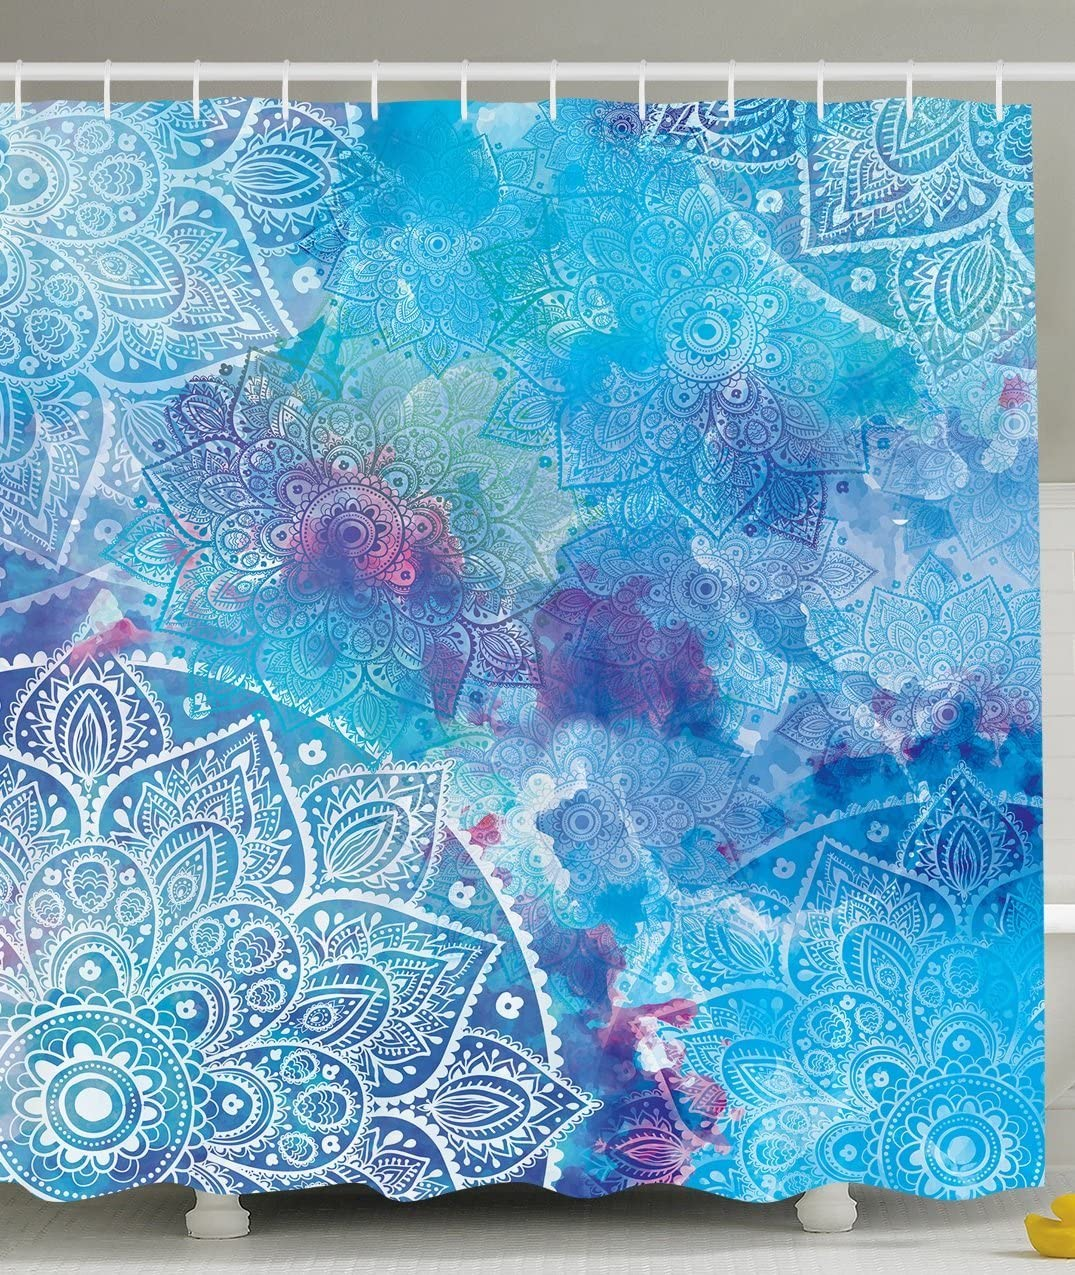 Batik Decor Shower Curtain by Ambesonne, Artistic Paisley Floral White Lace Mandala Watercolor Painting Artwork Print, Polyester Fabric Bathroom Set with Hooks, 69 X 70 Inches, Ombre Blue Purple Aqua